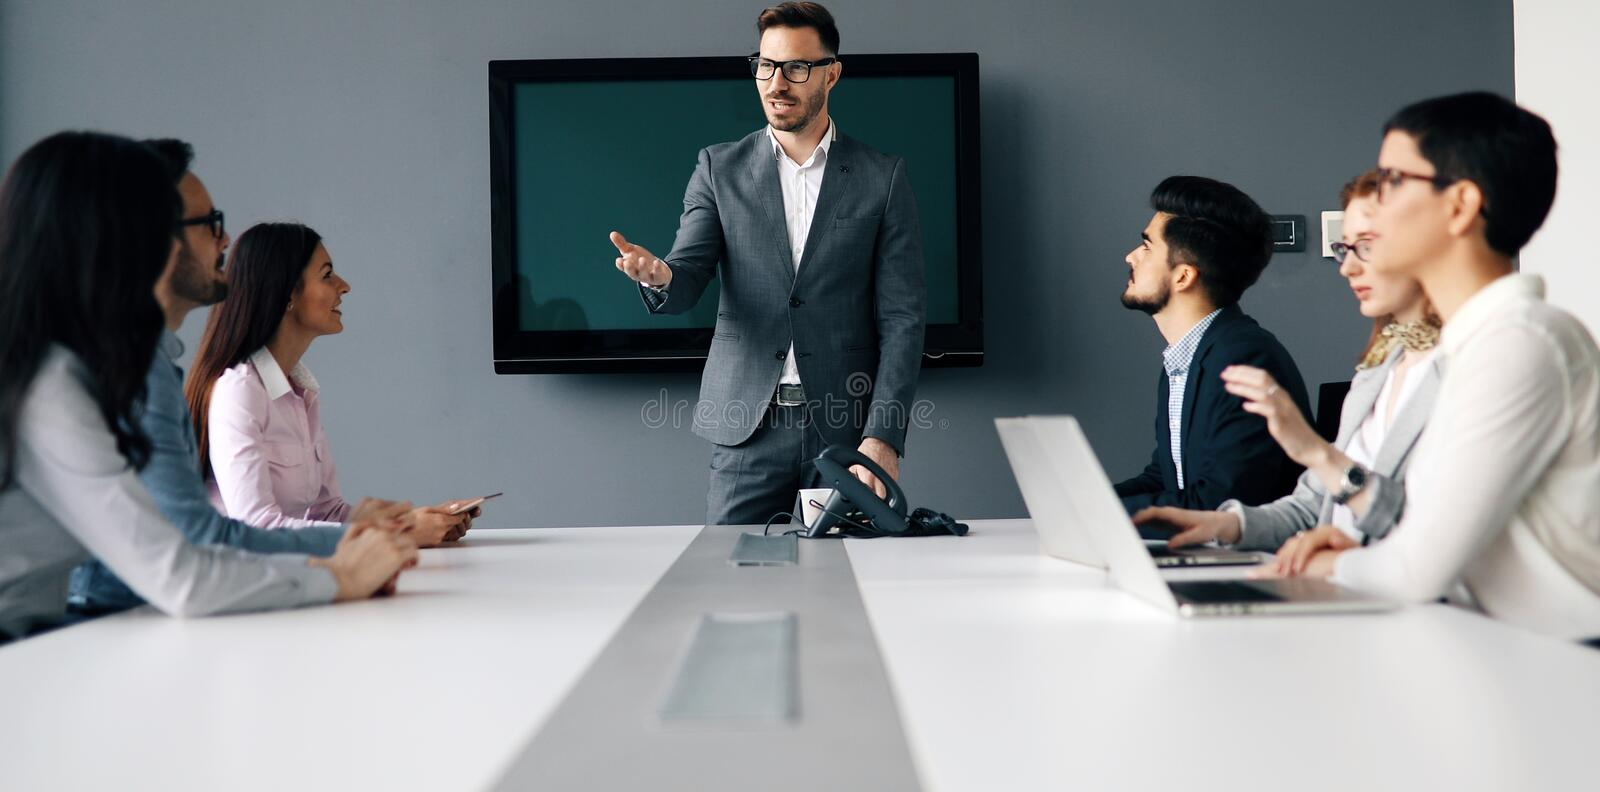 Business people conference in modern office. Business people conference and meeting in modern office royalty free stock photo